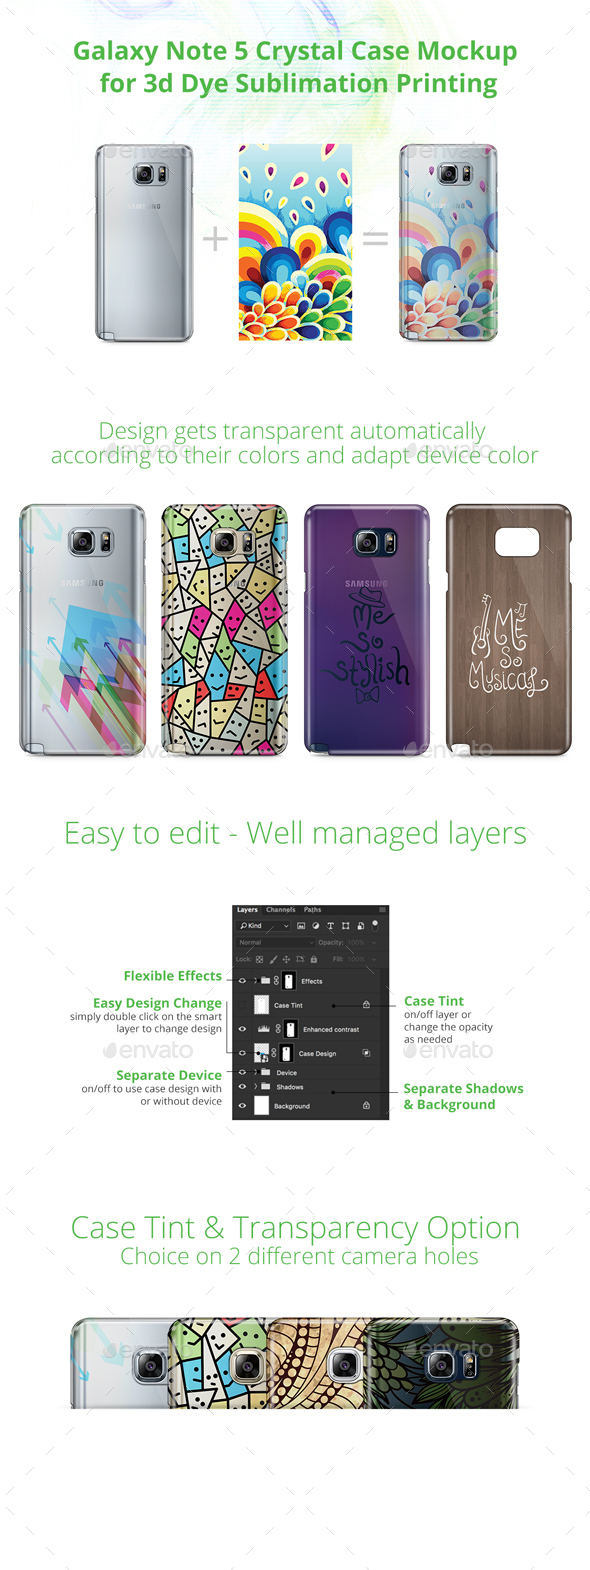 Galaxy Note 5 Crystal Case Mockup for 3d Dye Sublimation Printing- Back View - Mobile Displays